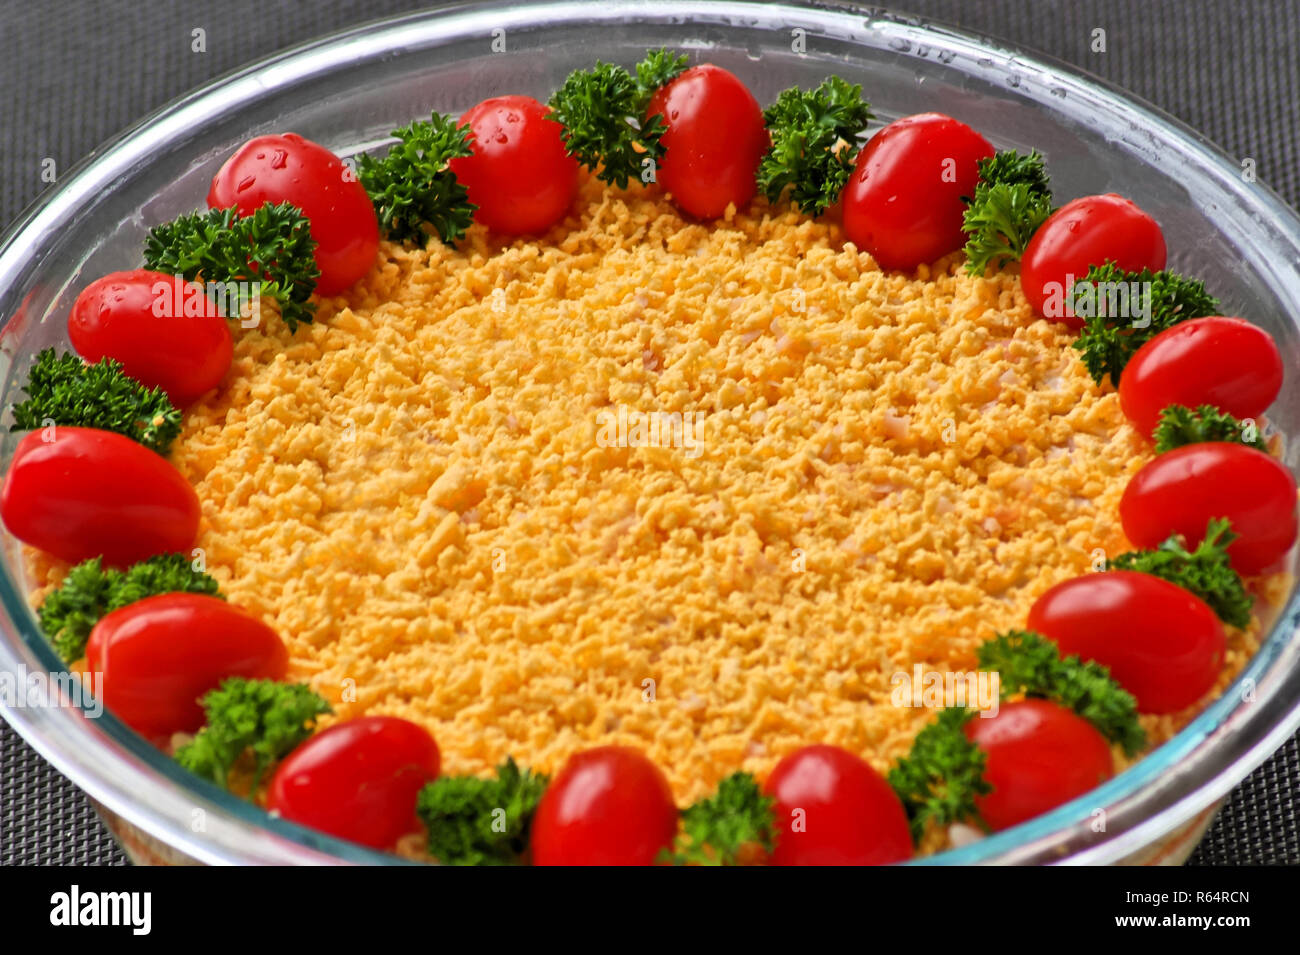 Mimosa salad, serving suggestion. Cooking tradition in central Europe - Stock Image